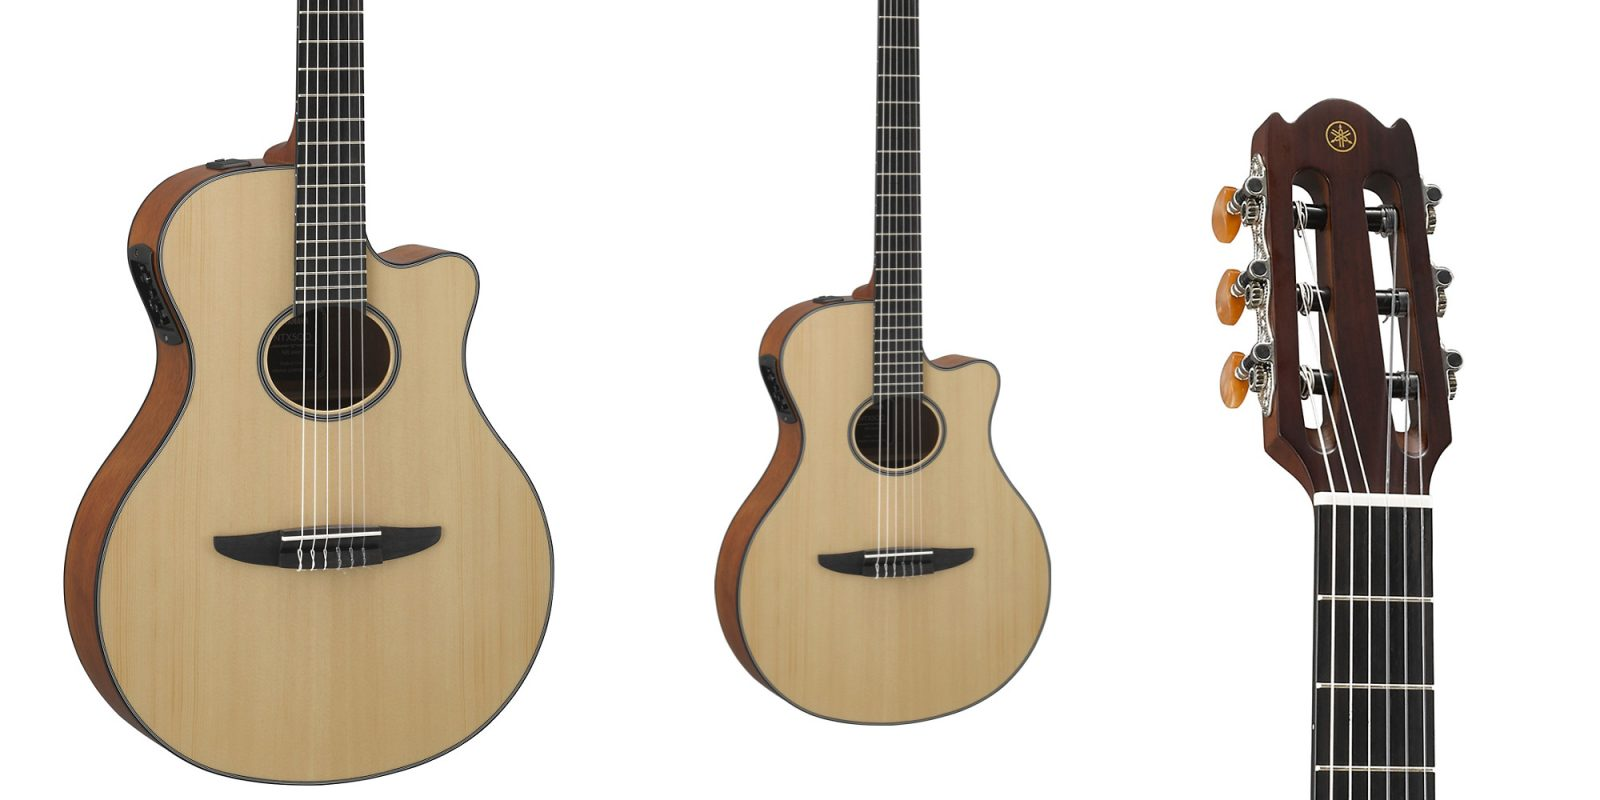 yamaha 39 s ntx500 acoustic electric guitar is a great starter instrument now 220 off 9to5toys. Black Bedroom Furniture Sets. Home Design Ideas